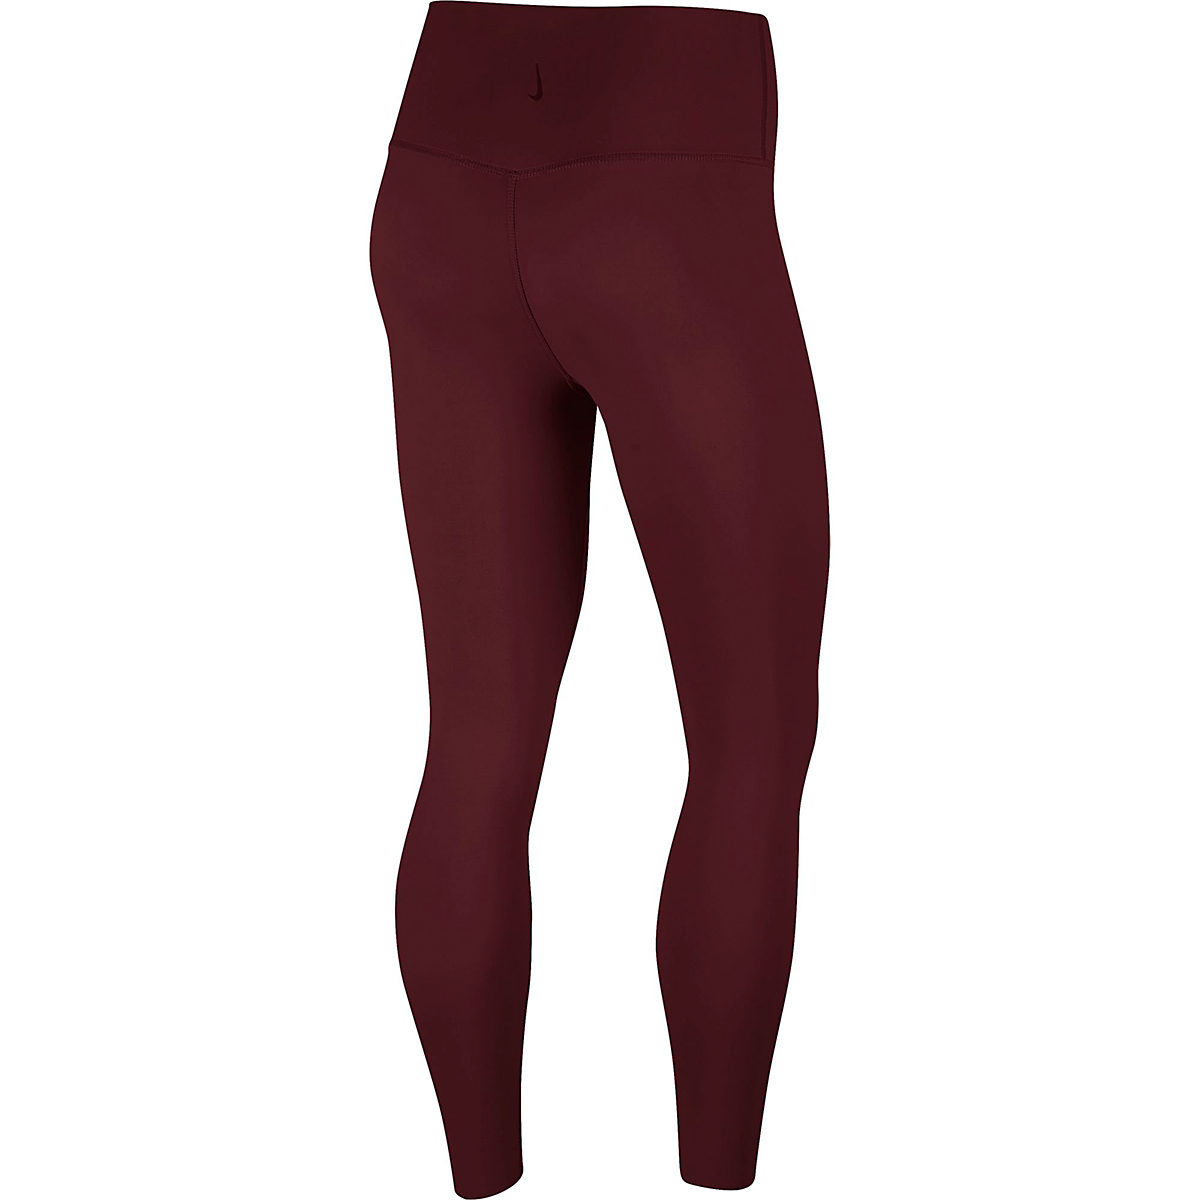 Women's Nike Luxe 7/8 Tights, , large, image 4